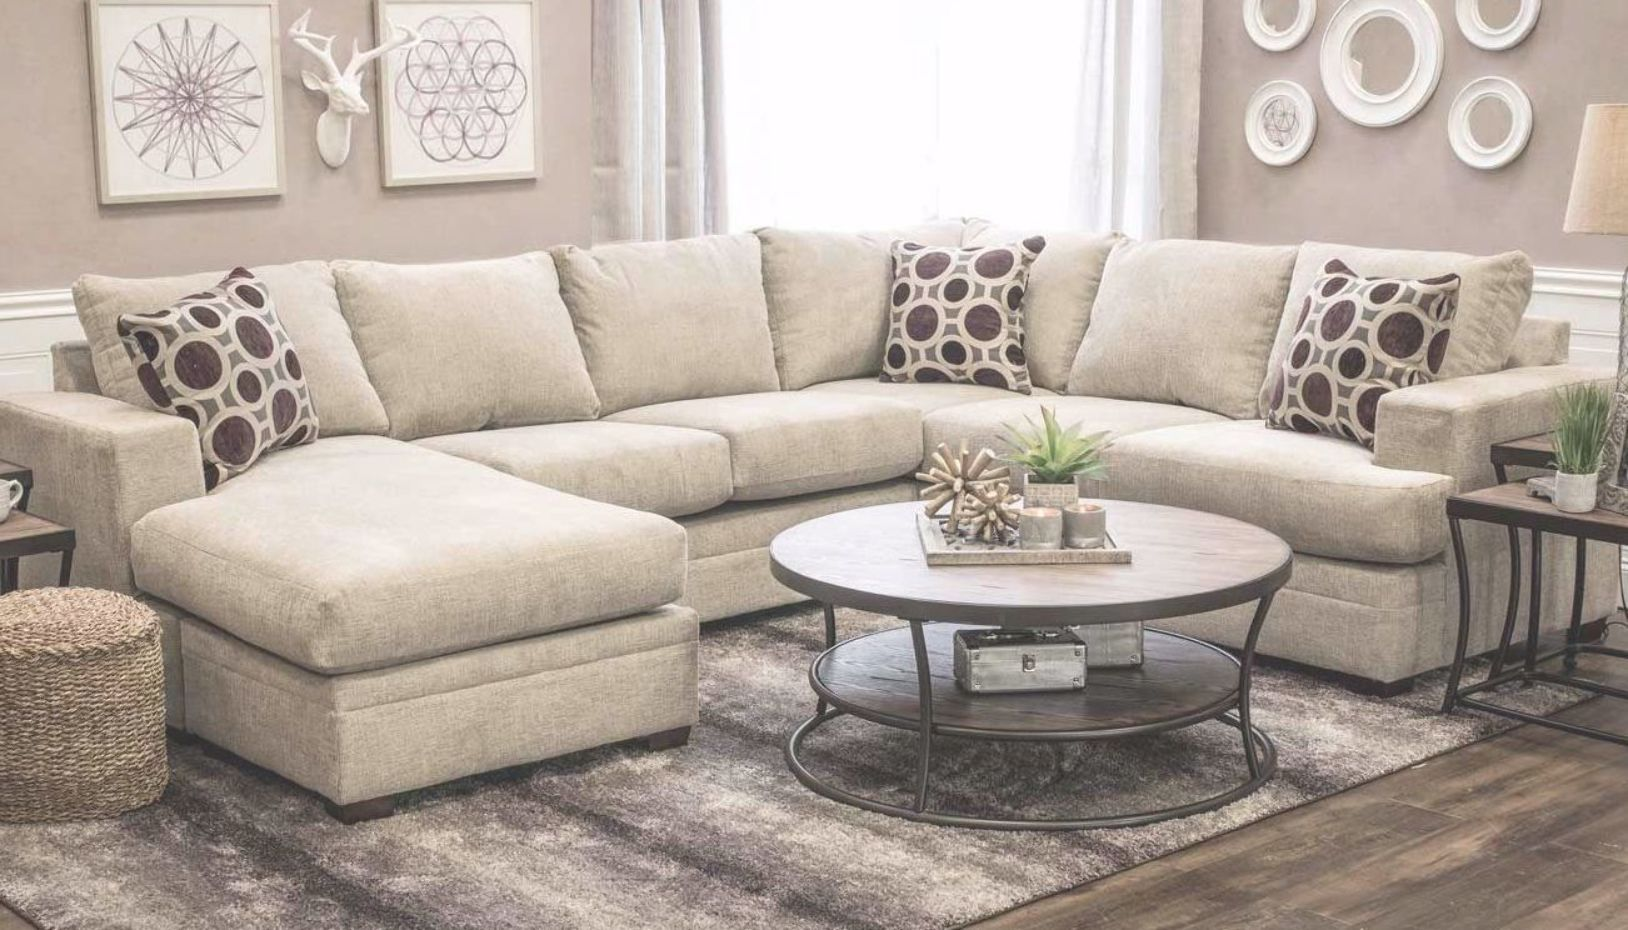 Sullivan Canvas Sofa With Chaise Home Zone Furniture Living Room Home Zone Furniture Furniture S Furniture Cheap Living Room Sets Living Room Furniture